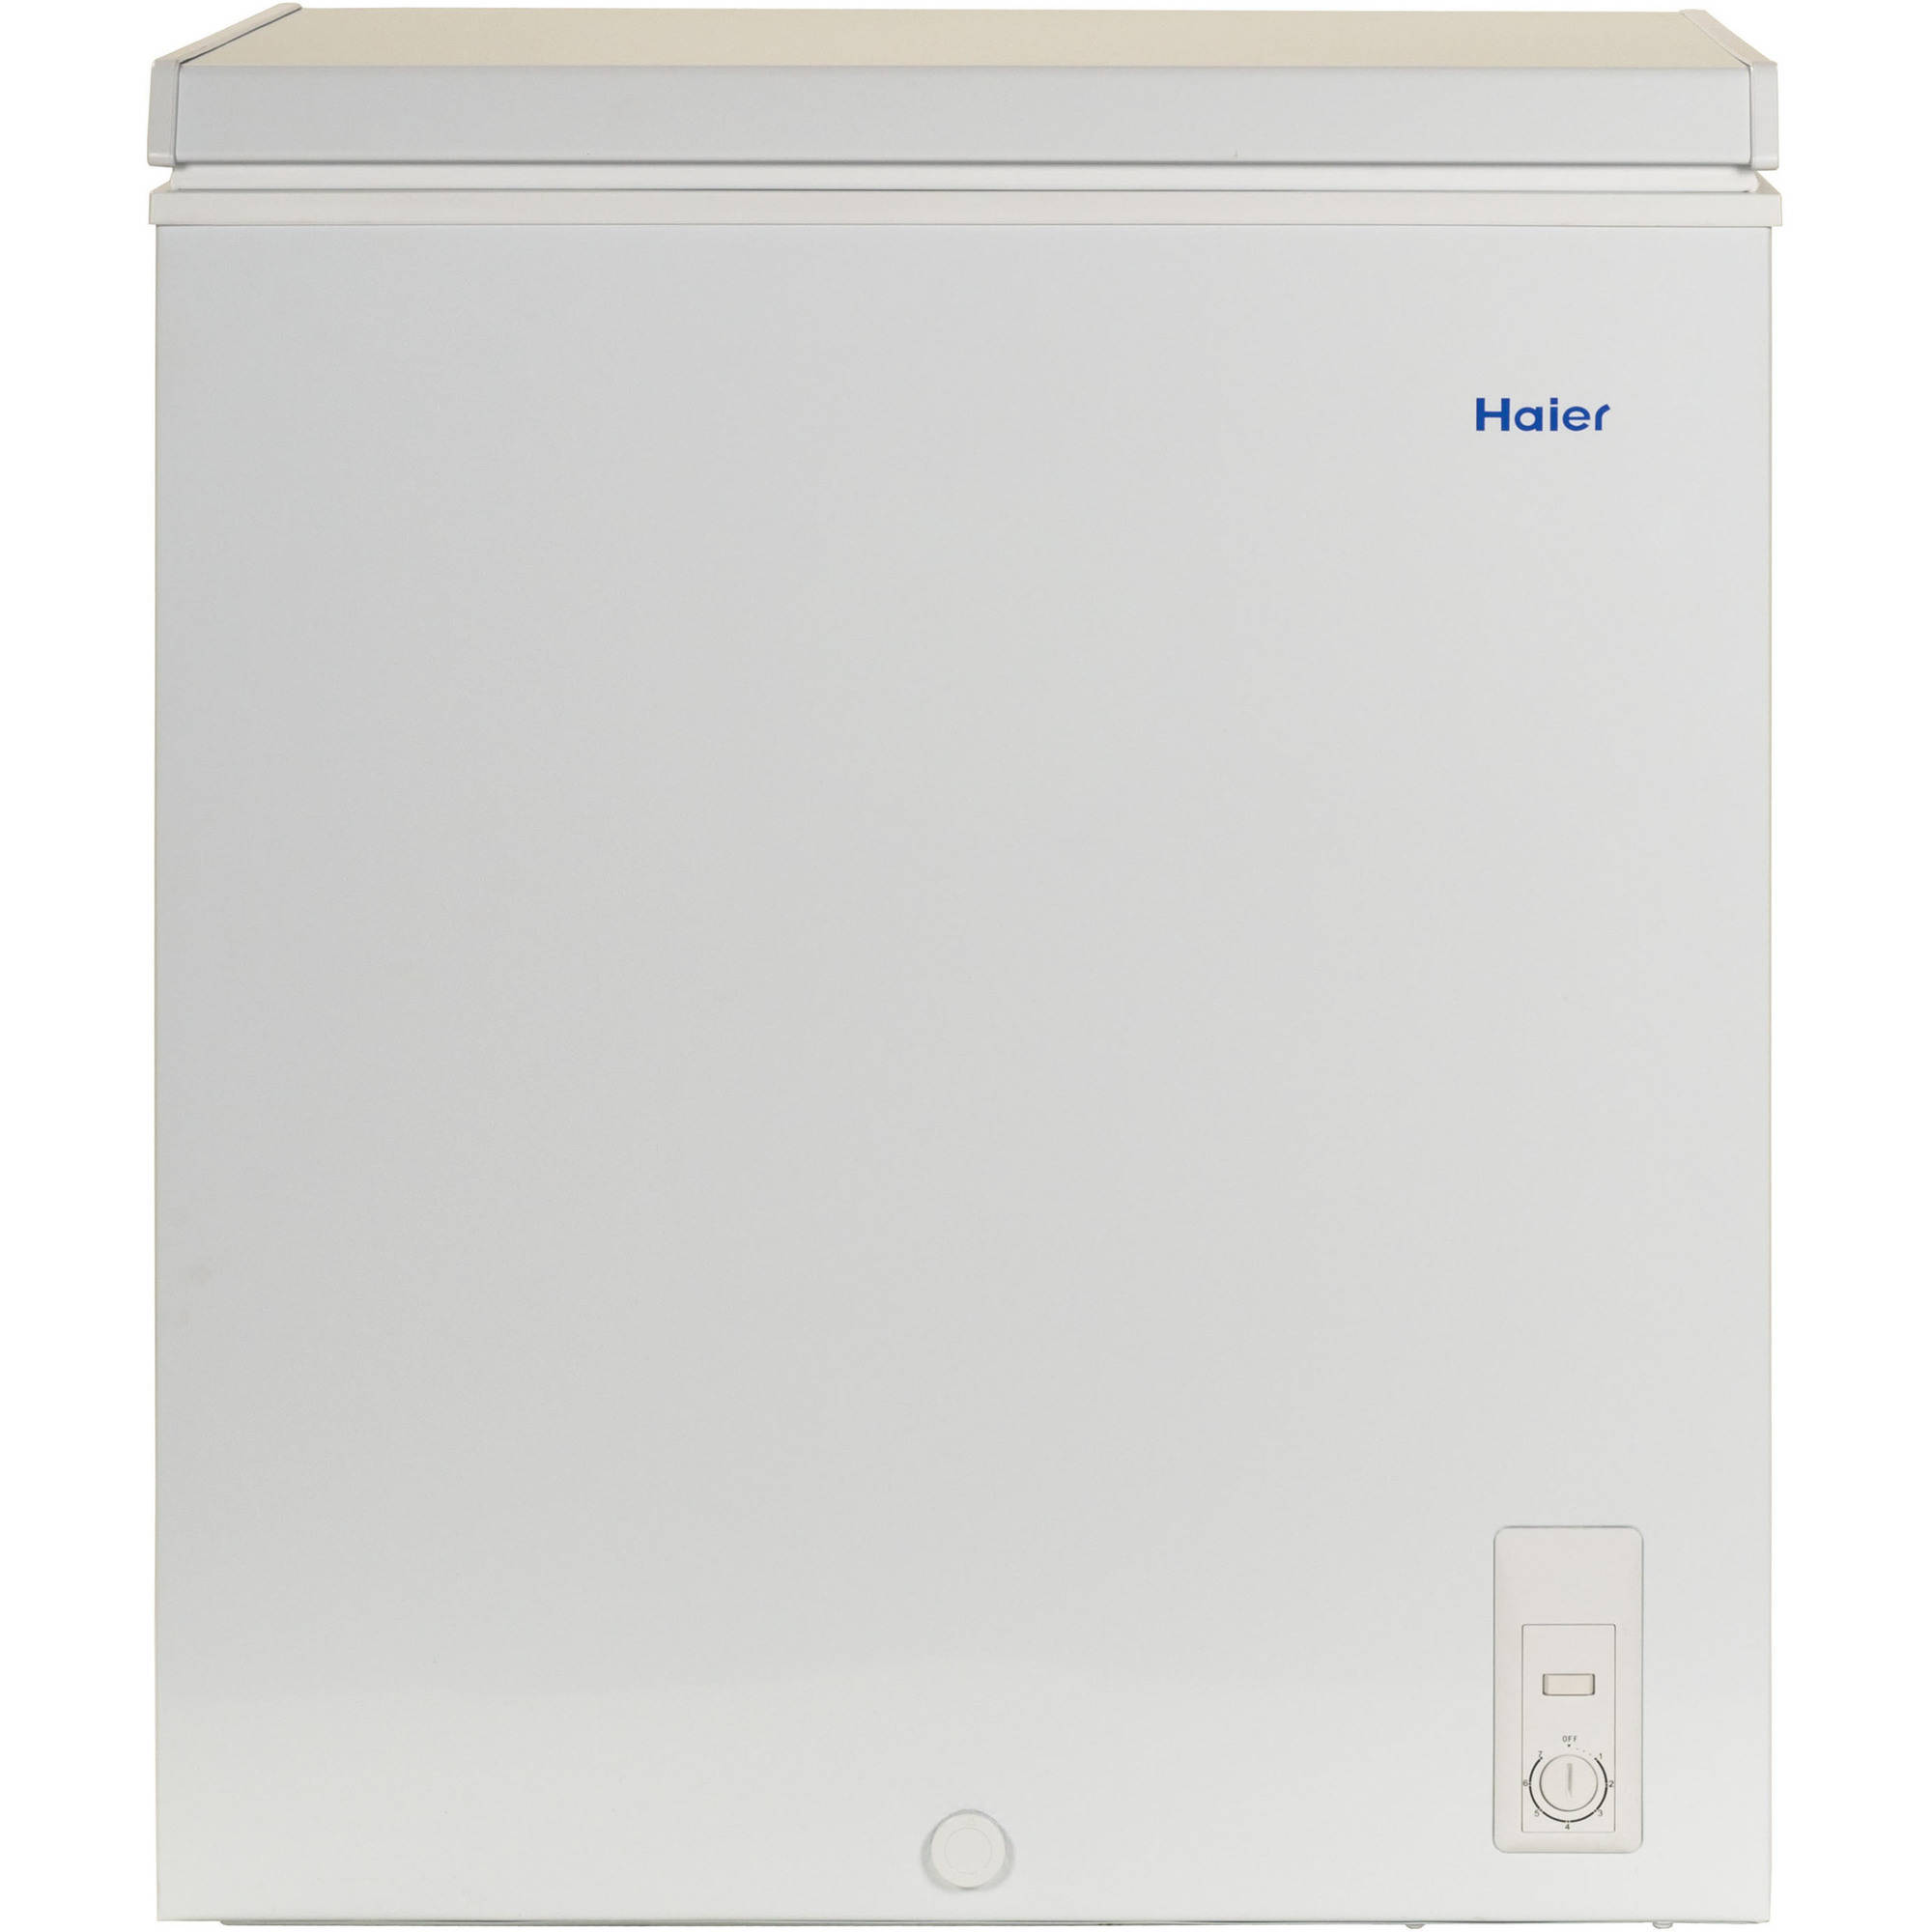 Haier 5.0 Chest Freezer, White